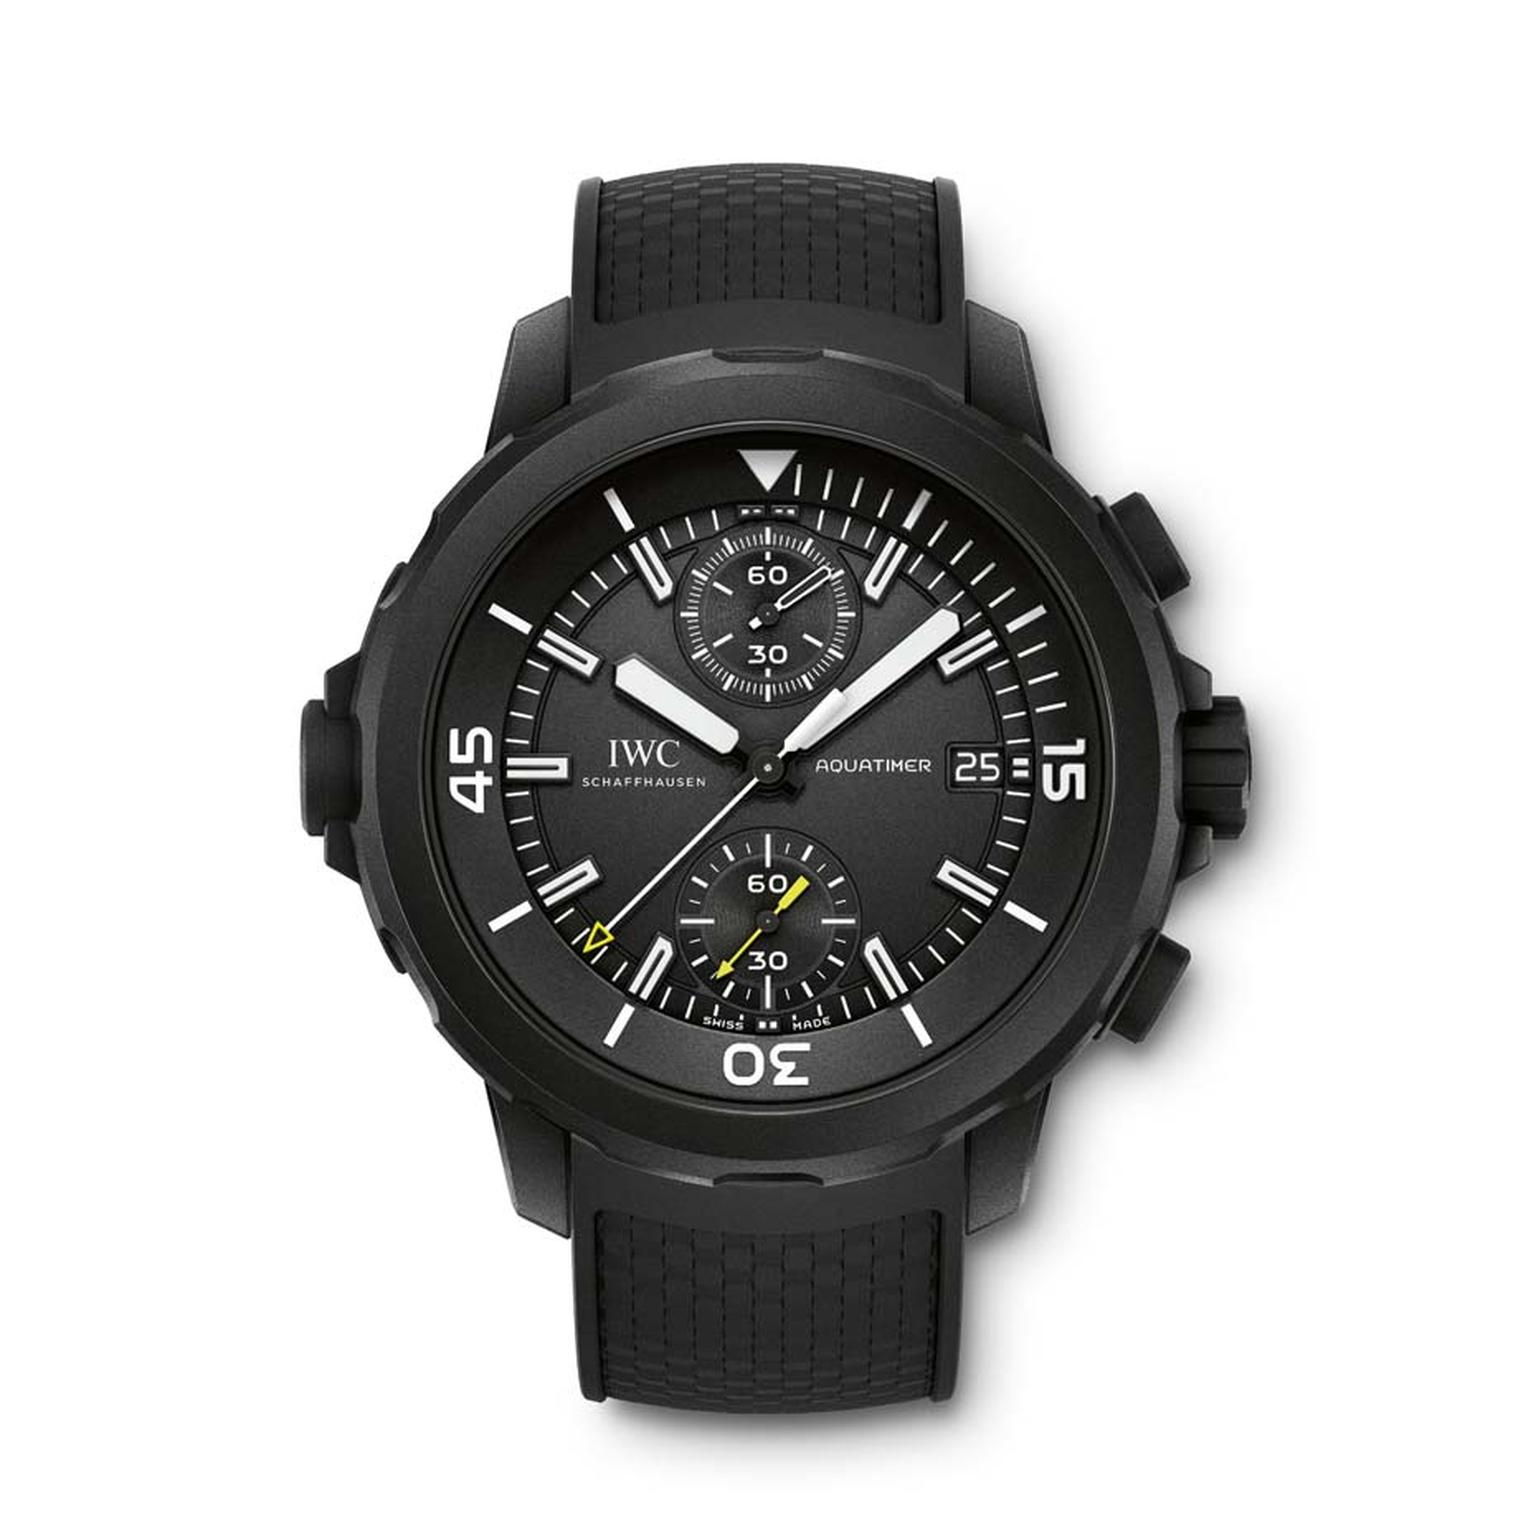 IWC has revamped its entire Aquatimer range for 2014.